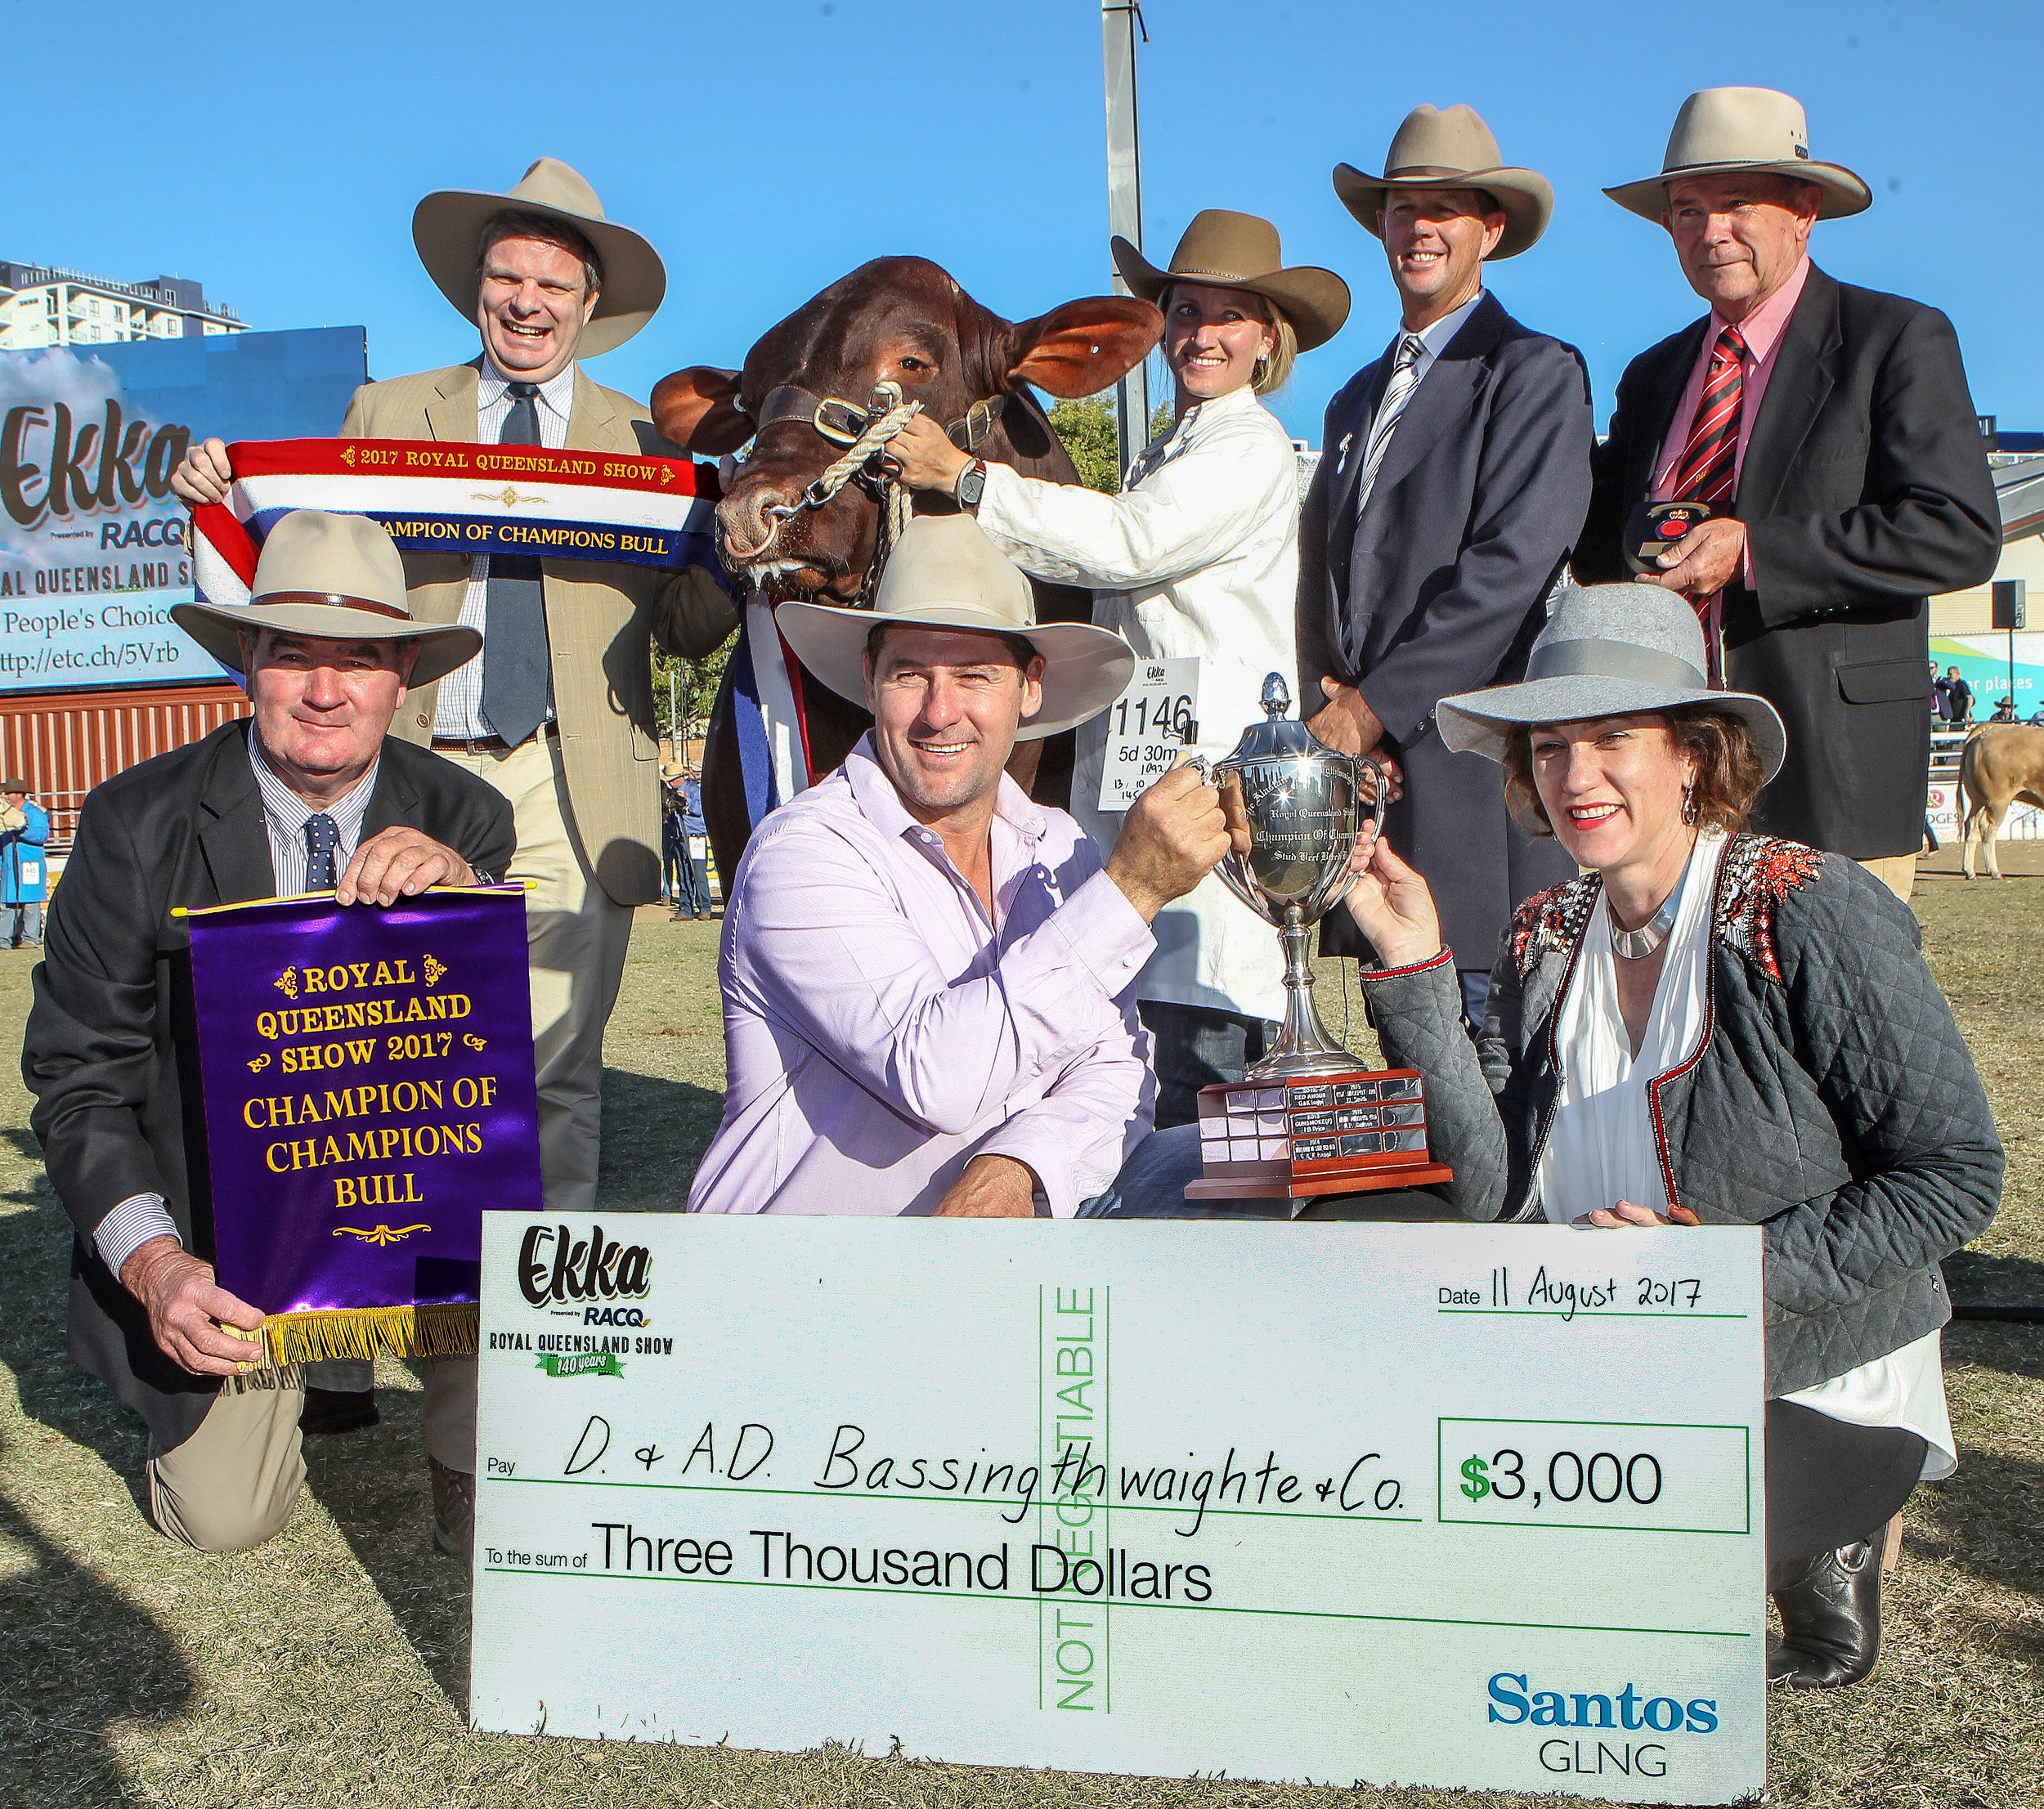 Yarrawonga Fixer L664 (P) awarded the Bassingthwaighte Family Trophy, Interbreed Champion of Champions, sponsored by Santos GLNG.  Alan Warby, RNA with Rod Duke from Santos, Parader Bridey Jonas with Judge, Brett Nobbs and Elders Representative Blake Munro, Exhibitor Andrew Bassingthwaighte and trophy presented by Wendy Ferguson.